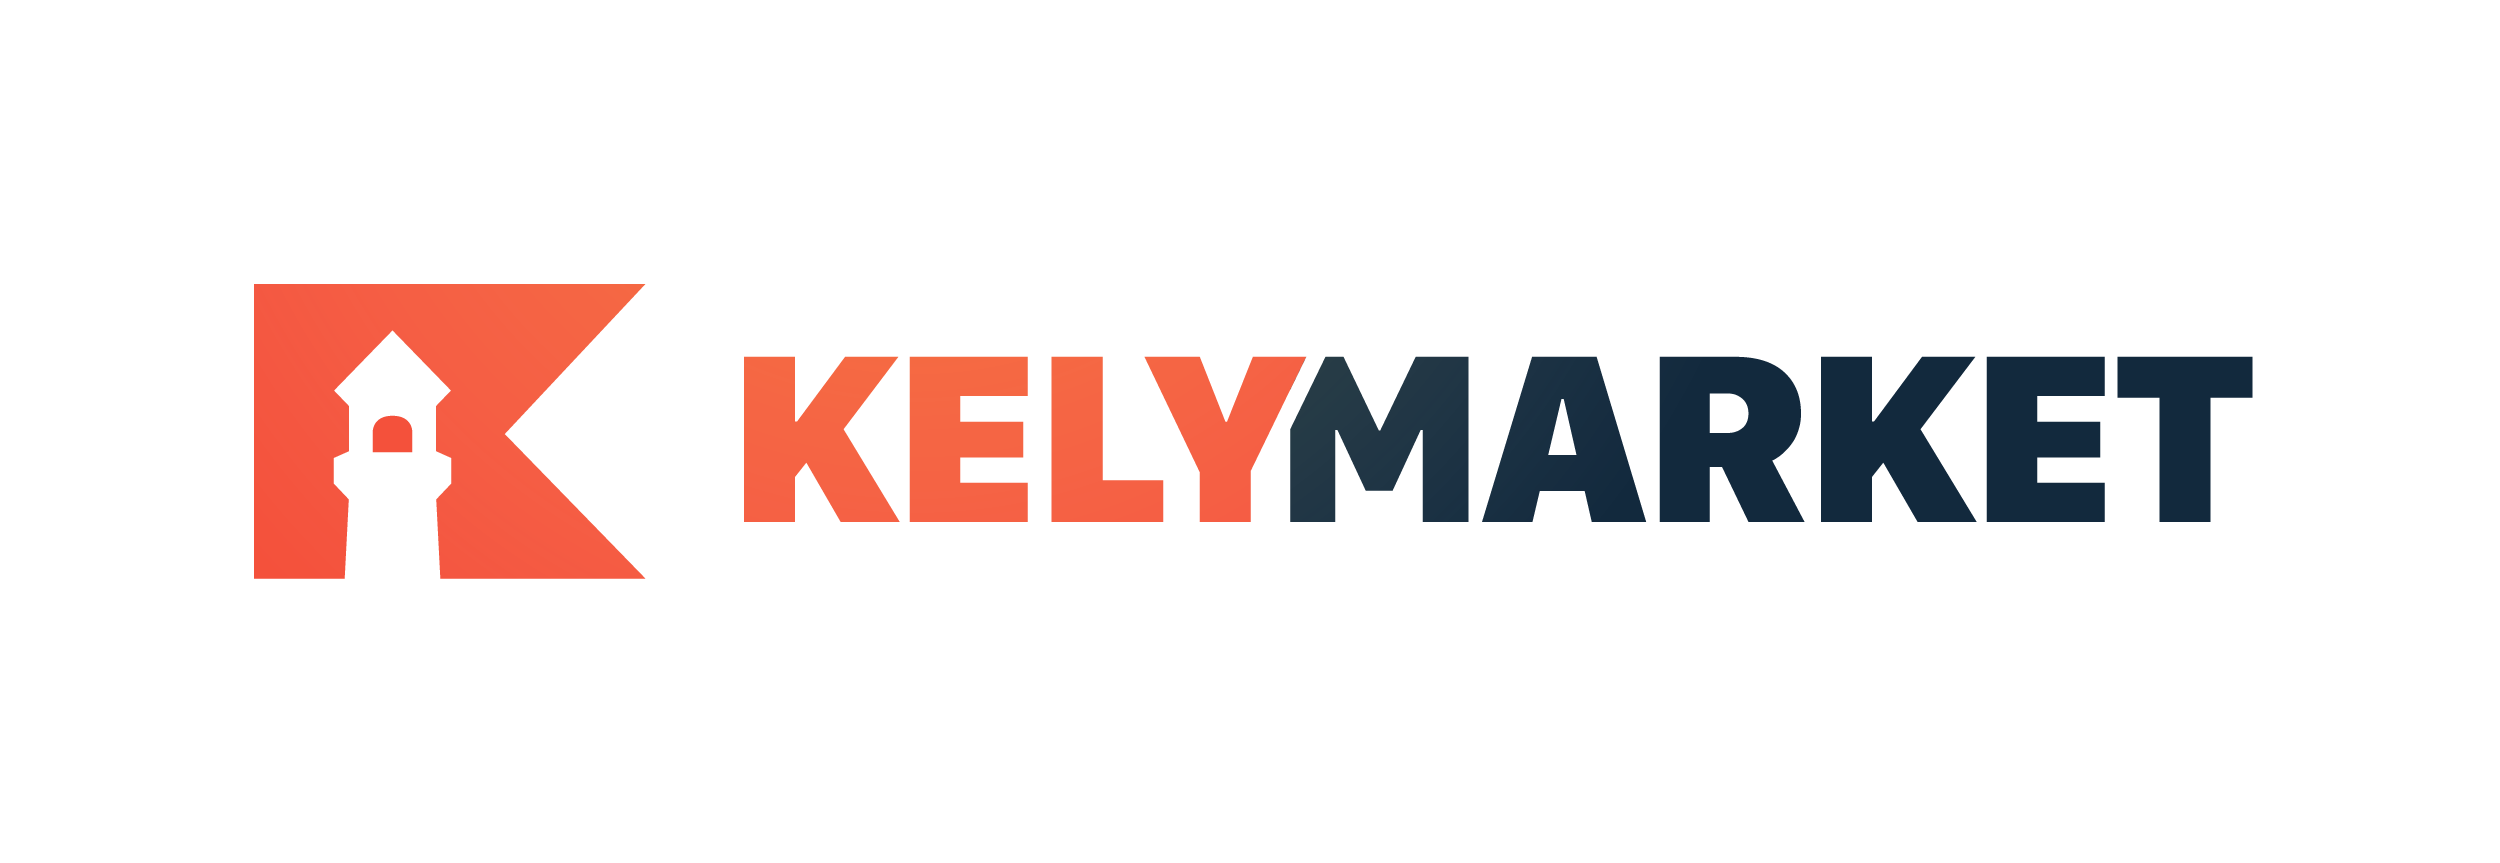 Kely Market - Market Place - millimade